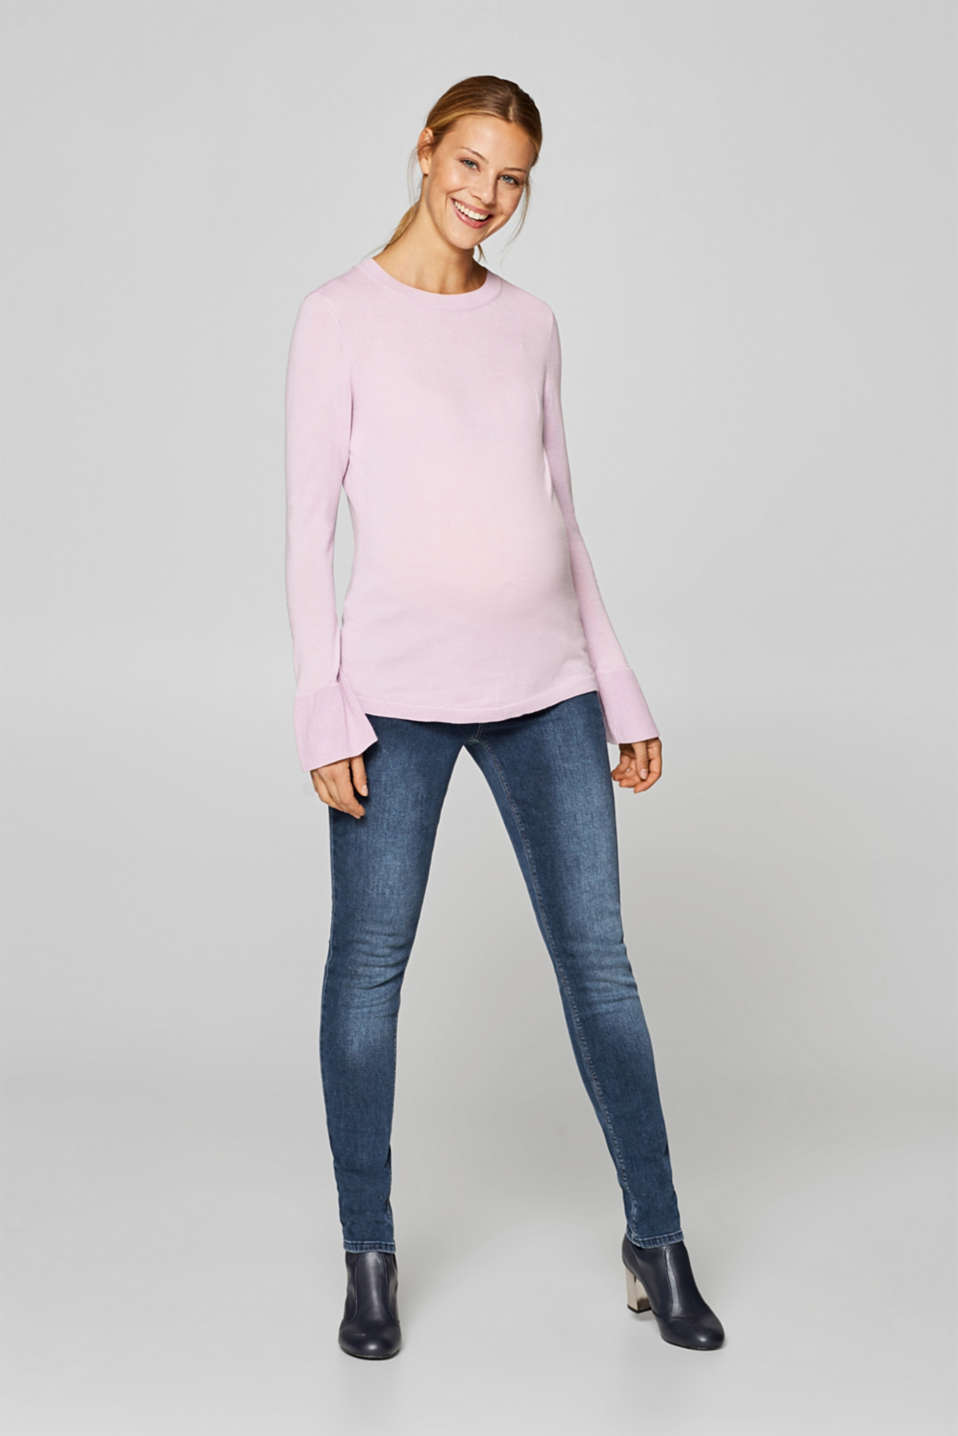 Esprit - Stretch jeans with a fashionable under-bump waistband